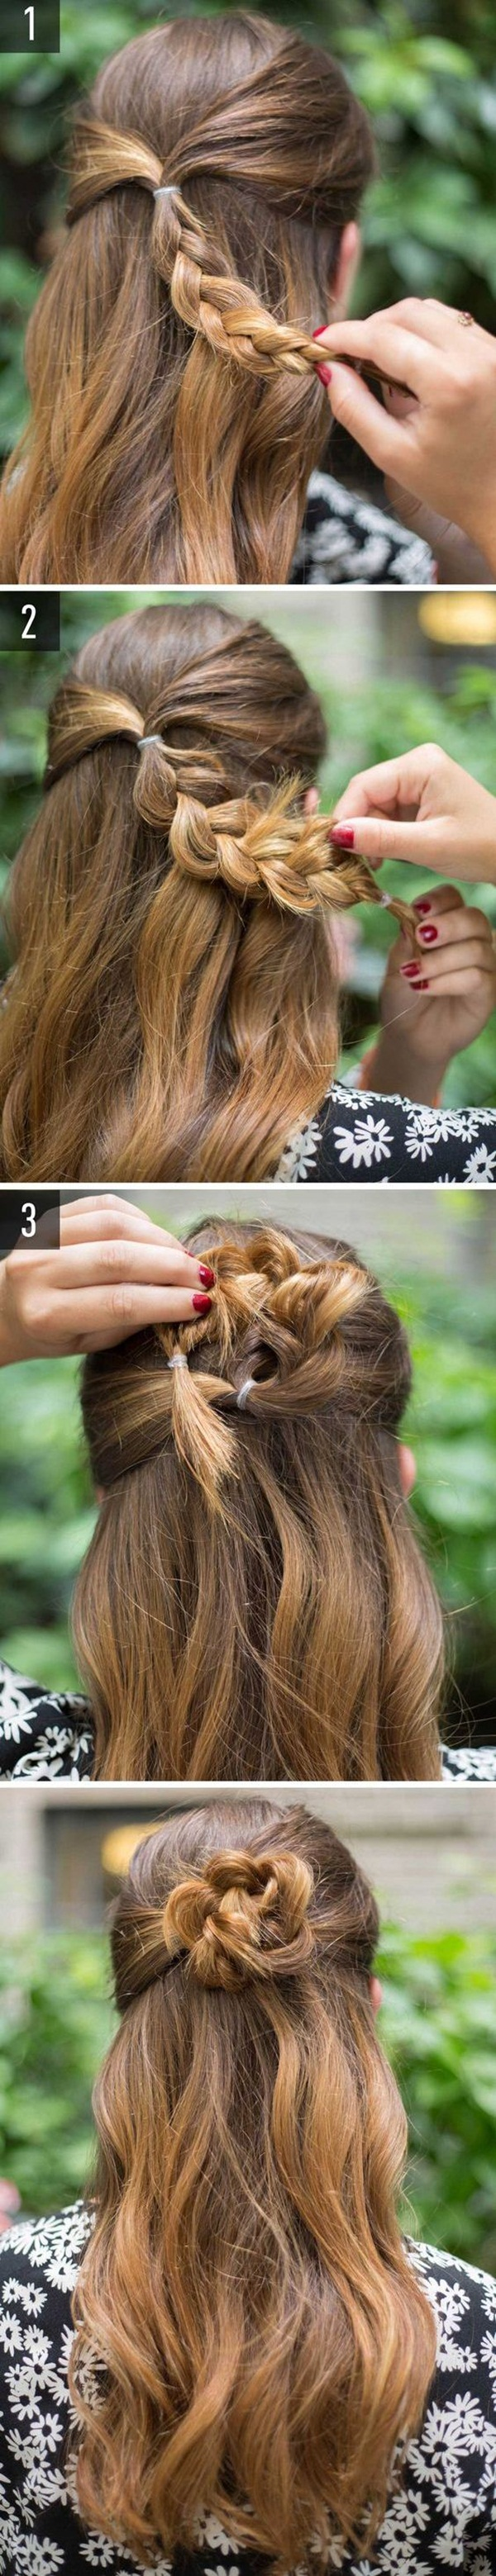 Easy Hairstyles For School (22)